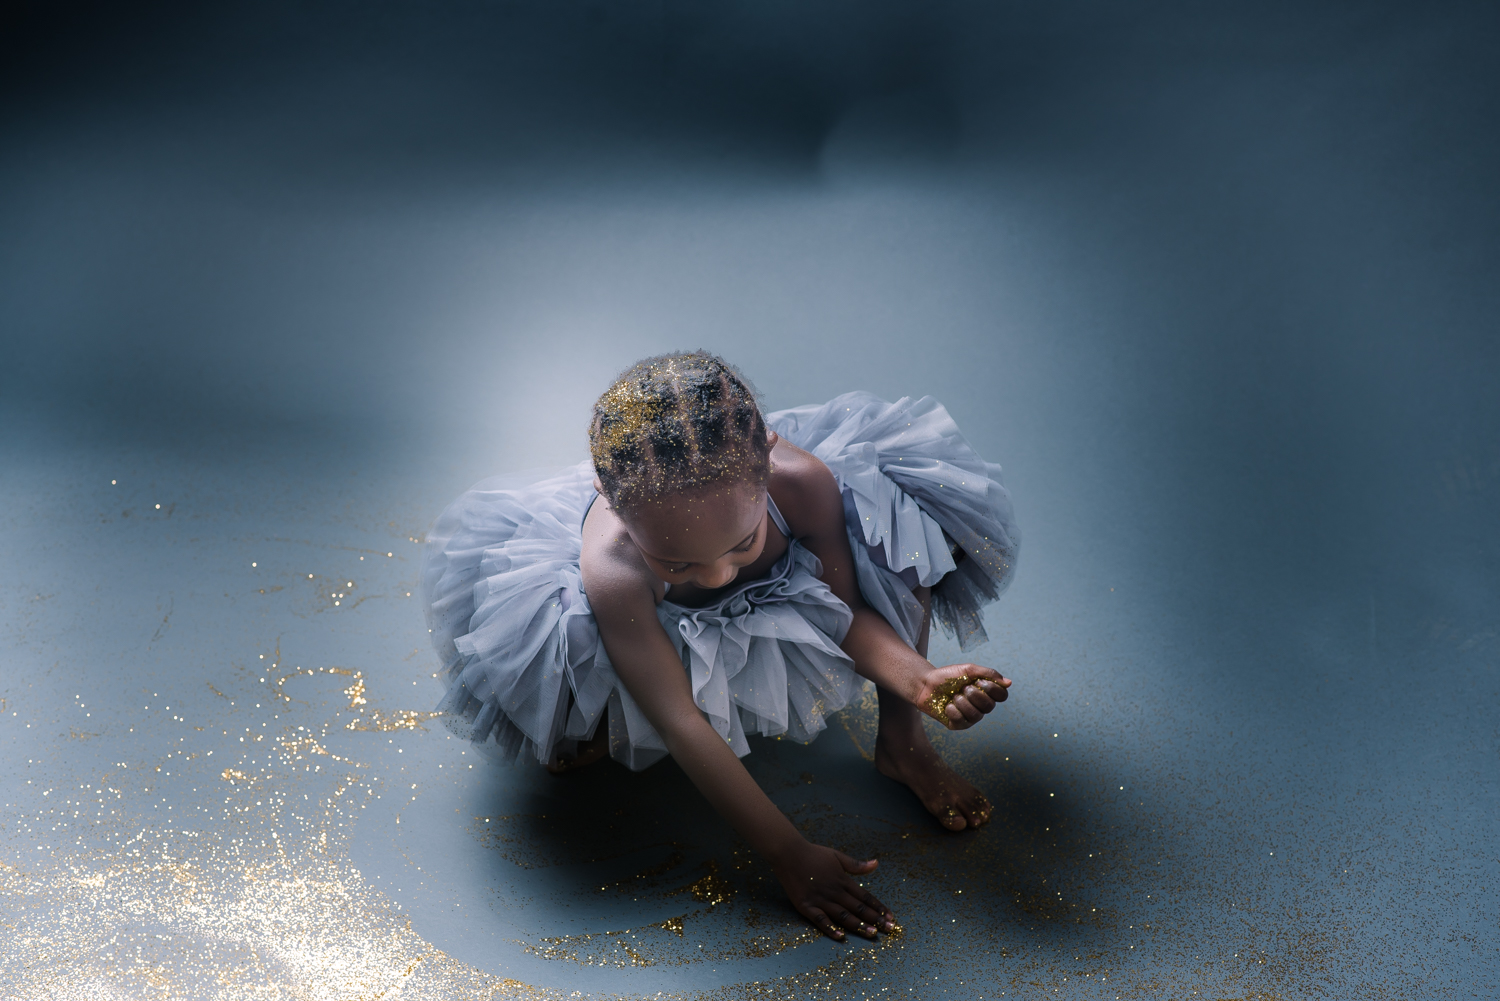 Birthday Fun for 4 year old with Glitter in Studio (5 of 1).jpg